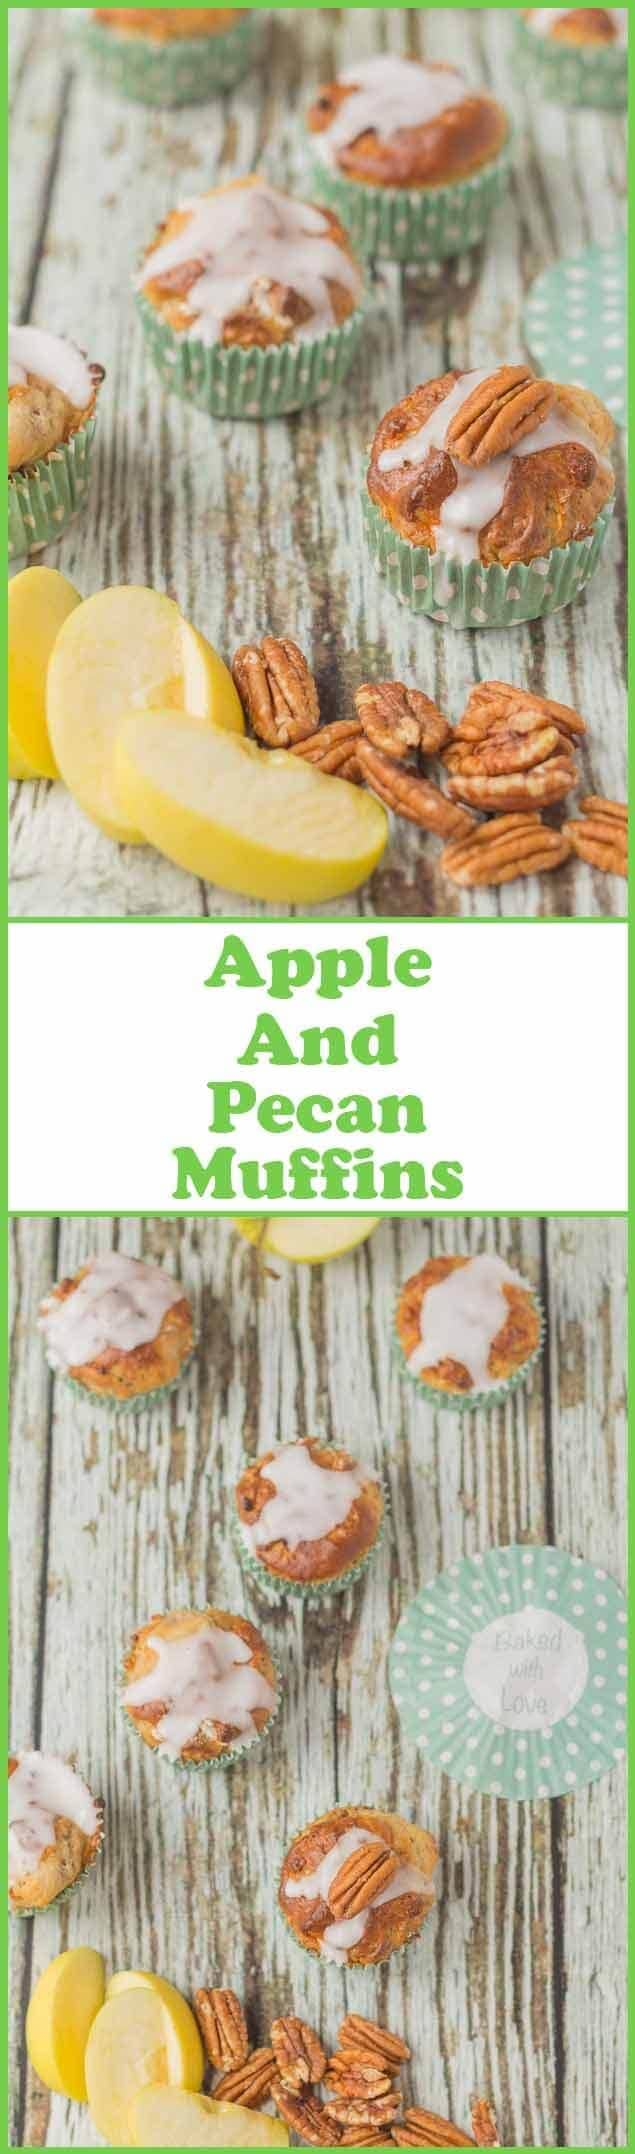 These scrumptious apple and pecan muffins have a light and moist texture and are sweet to taste. They have a little cinnamon sugar crunchy topping but are only 173 calories each!